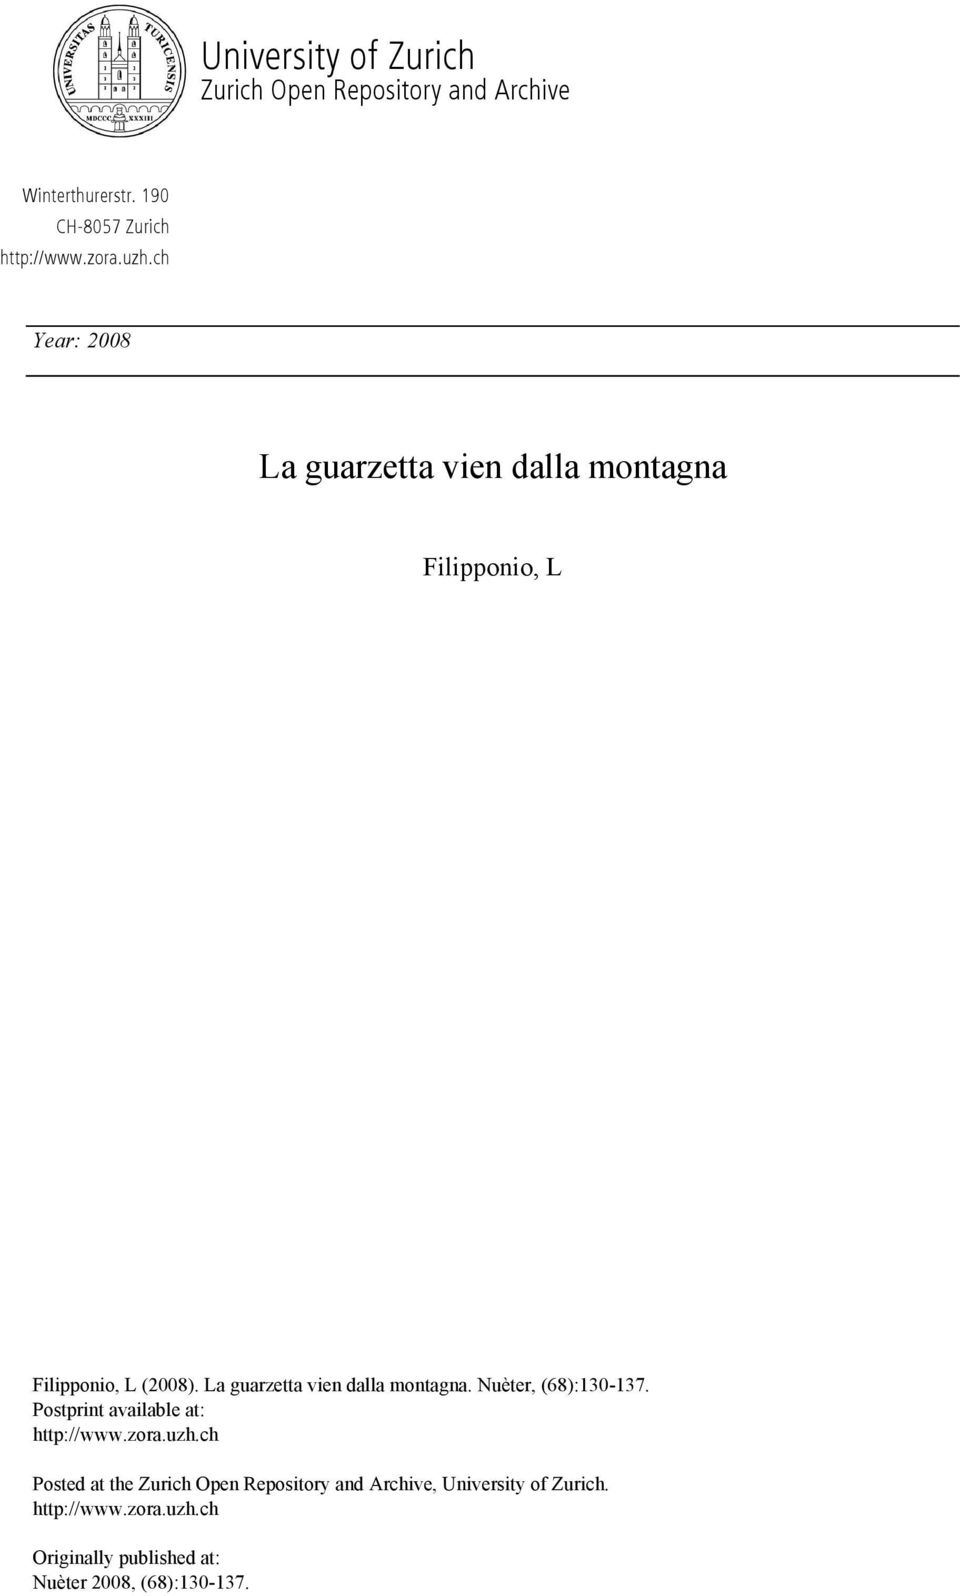 La guarzetta vien dalla montagna. Nuèter, (68):130-137. Postprint available at: http://www.zora.uzh.